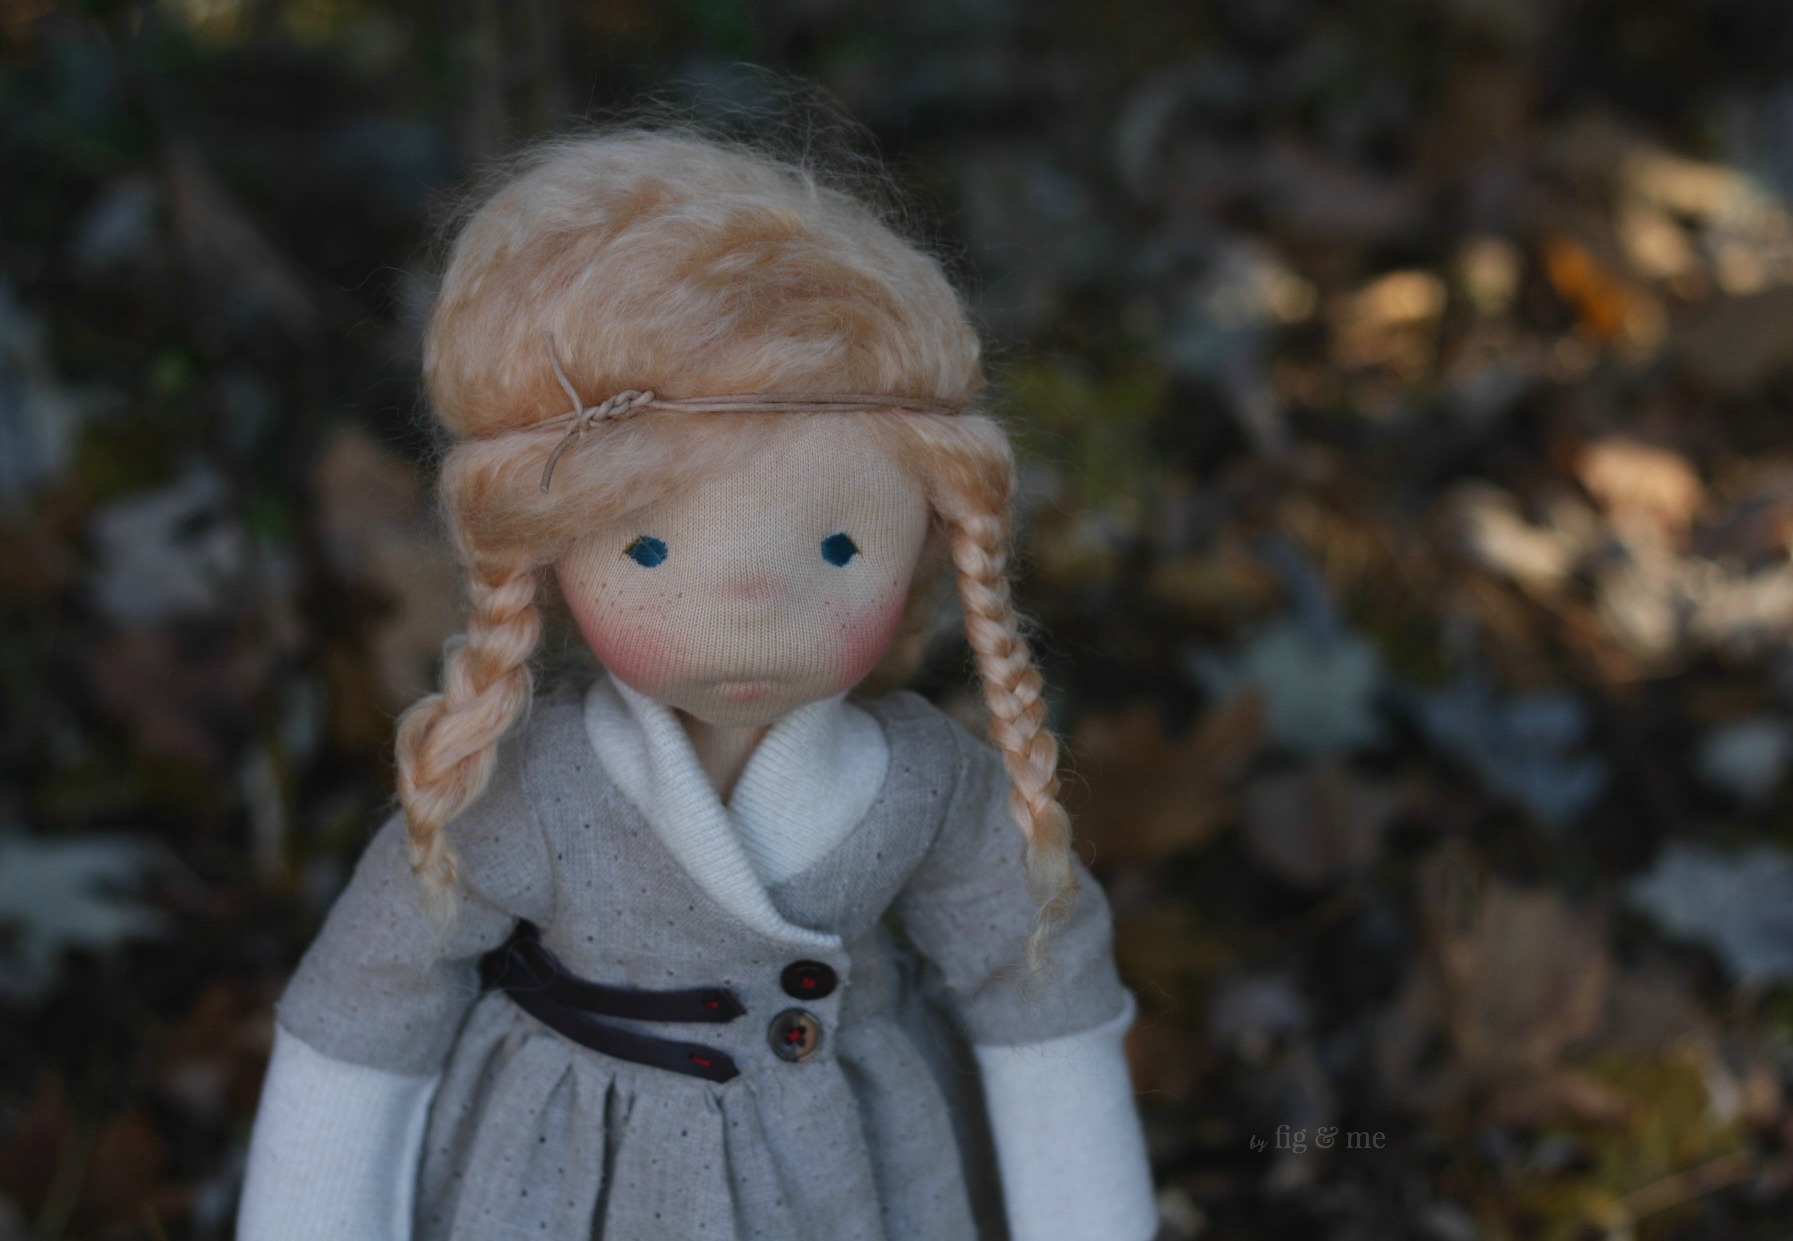 Iona watching the ducks. Natural fiber art doll by Fig and me.